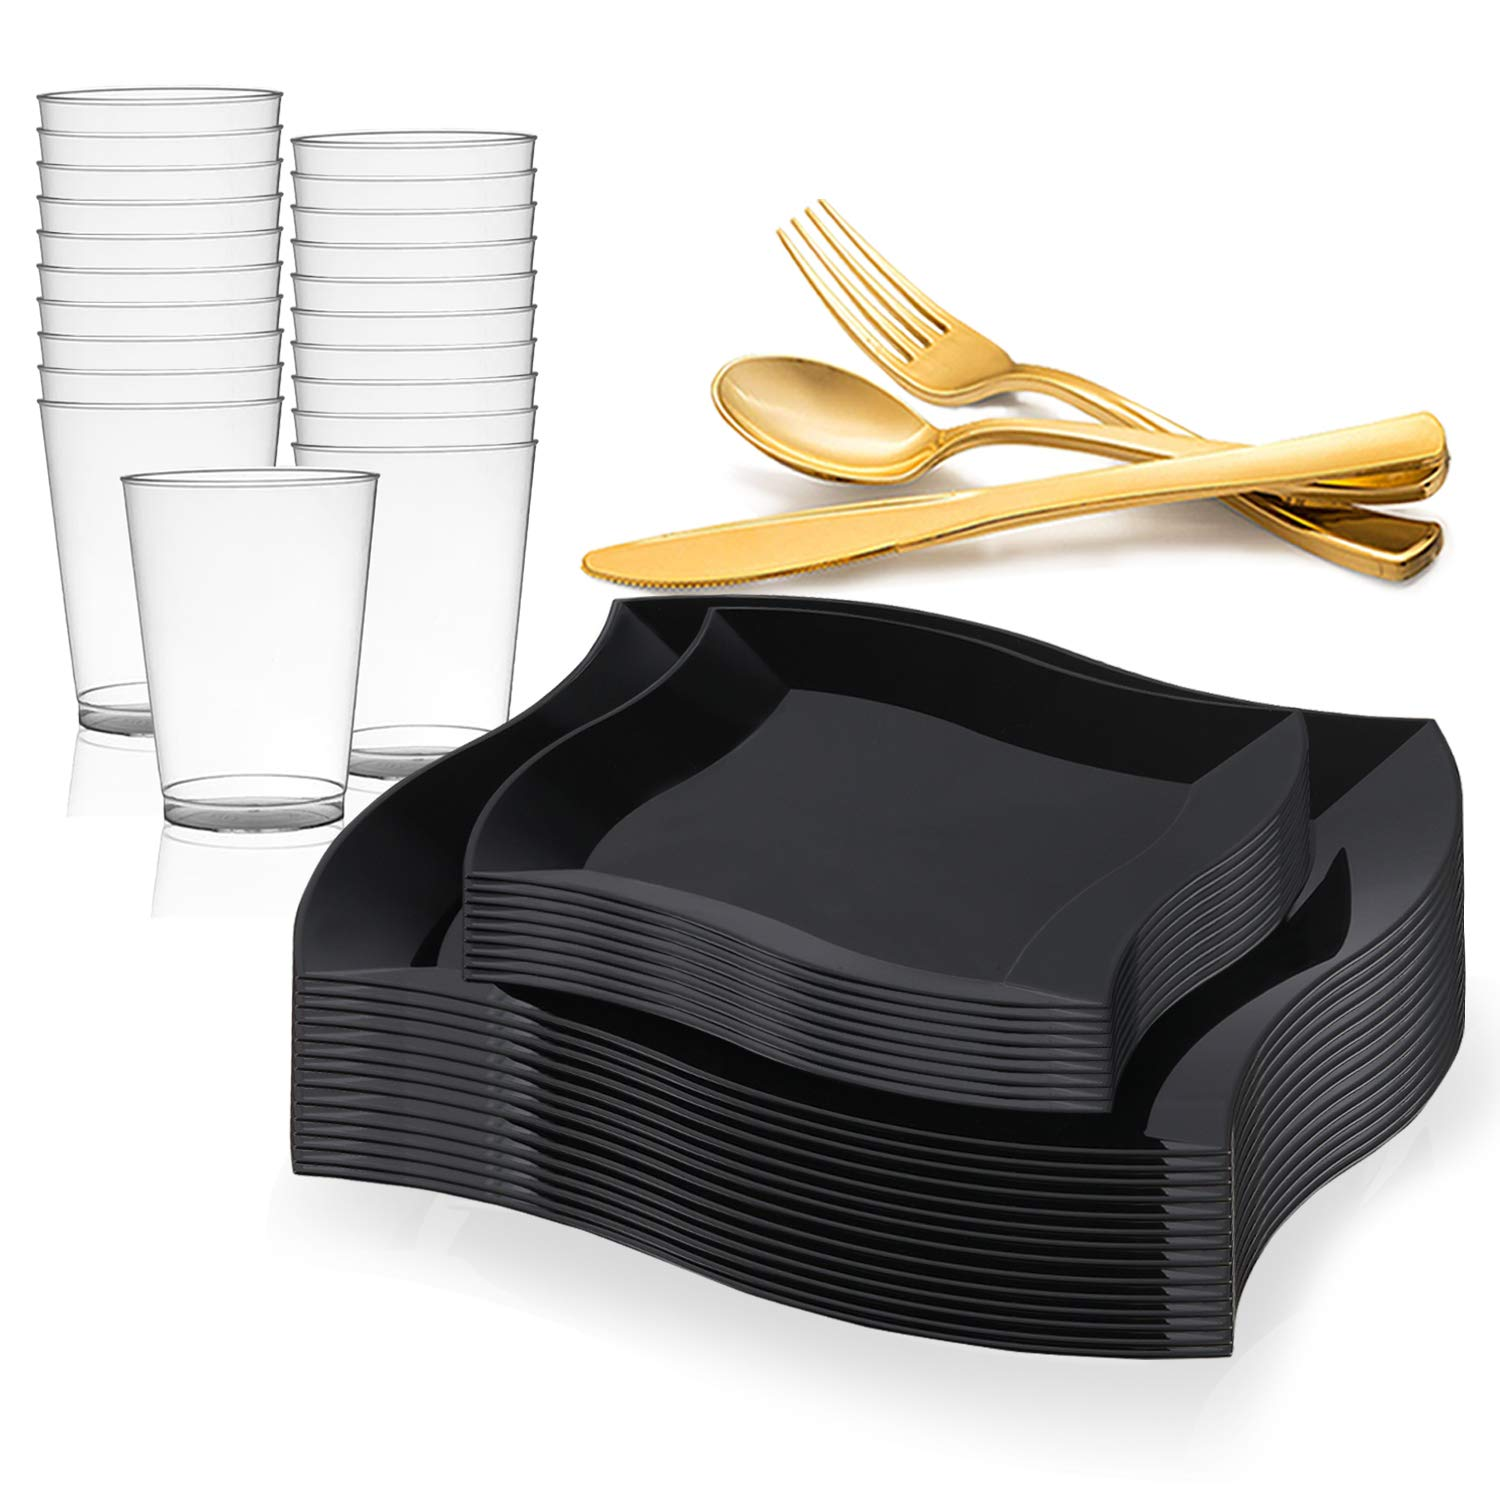 Elegant Disposable Plastic Dinnerware Set for 60 Guests - Includes Fancy Wave Black Dinner Plates, Dessert / Salad Plates, Gold Silverware/Cutlery & Cups For Wedding, Birthday Party & Other Occasions